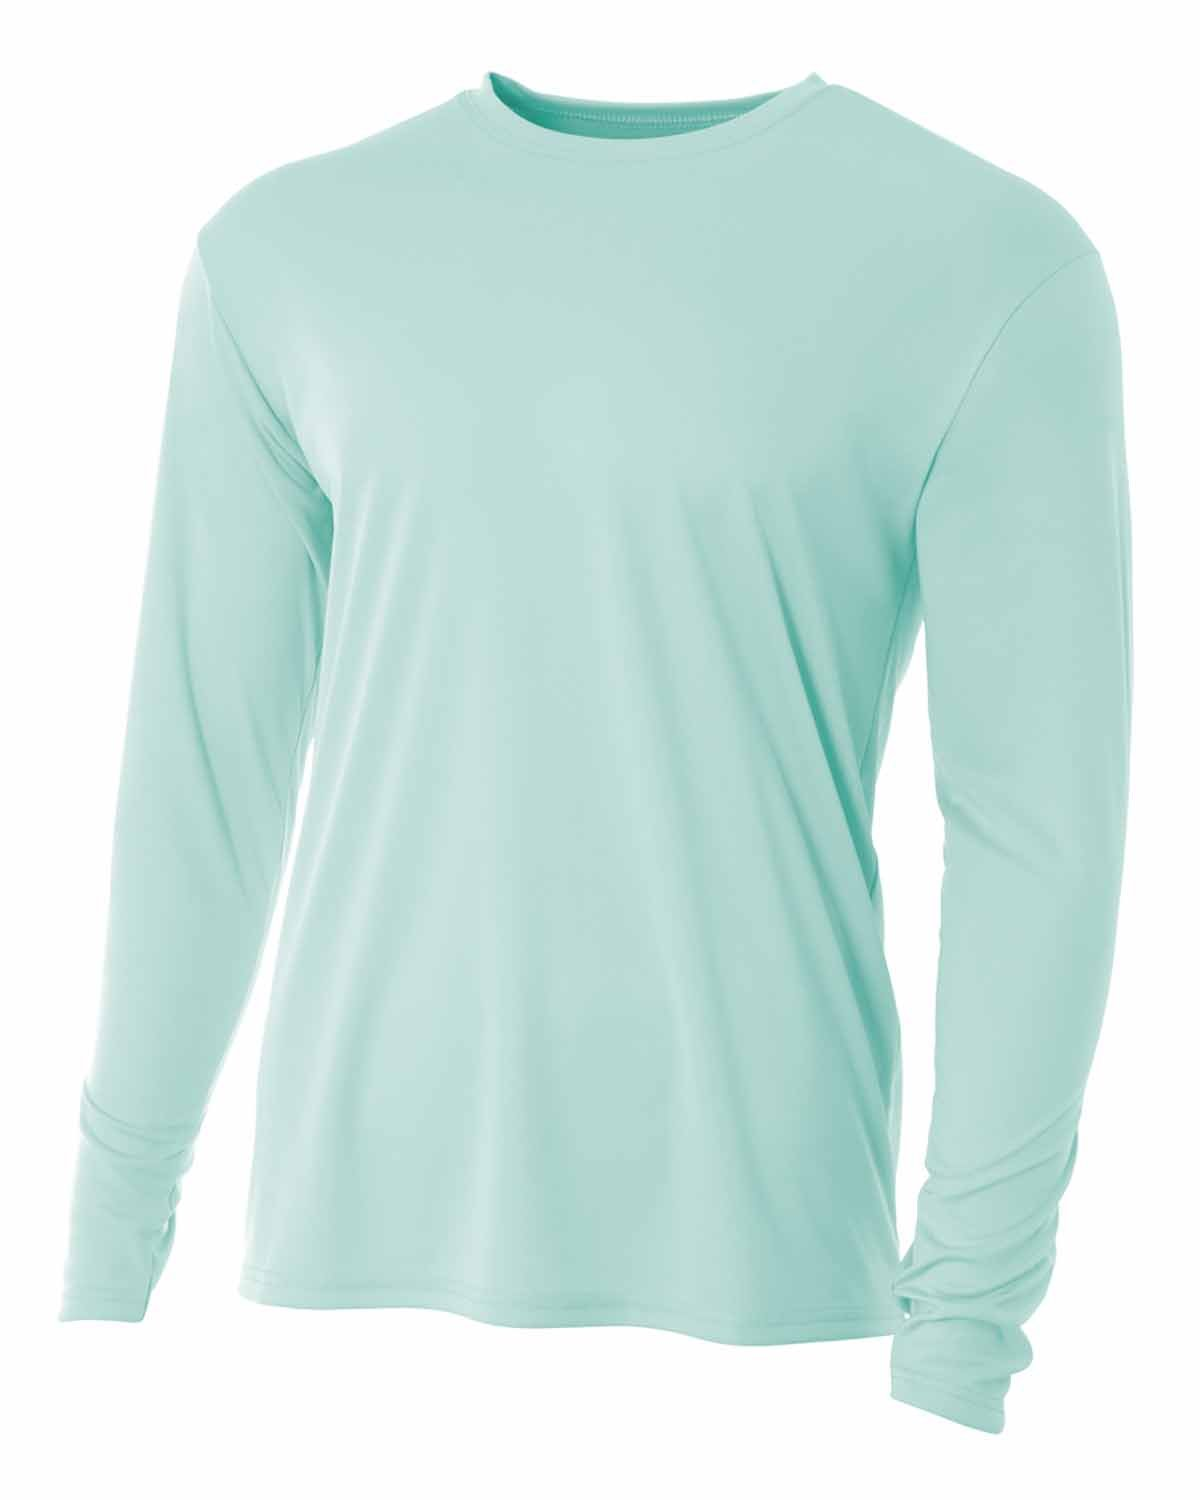 A4 Youth Long Sleeve Cooling Performance Crew Shirt PASTEL MINT